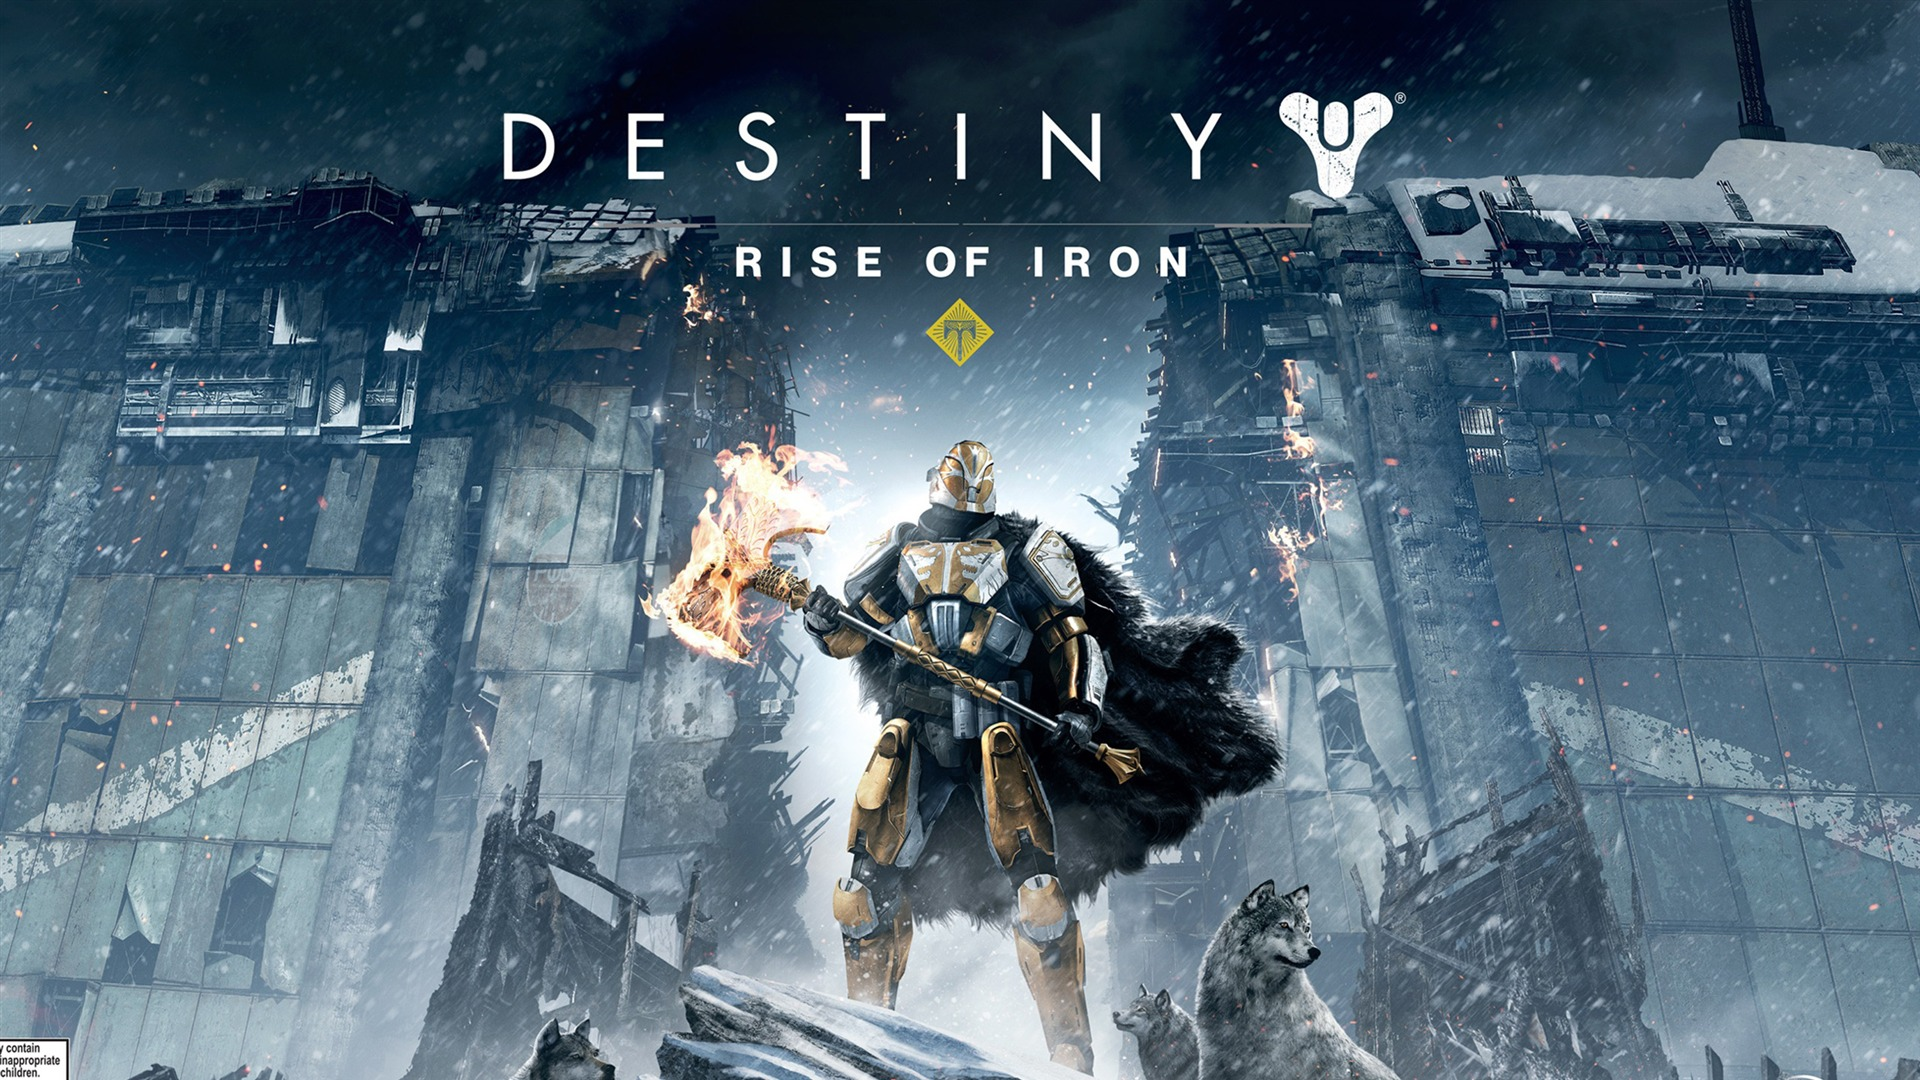 Destiny Rise Of Iron Wallpaper: Destiny Rise Of Iron-2016 Game Posters HD Wallpaper